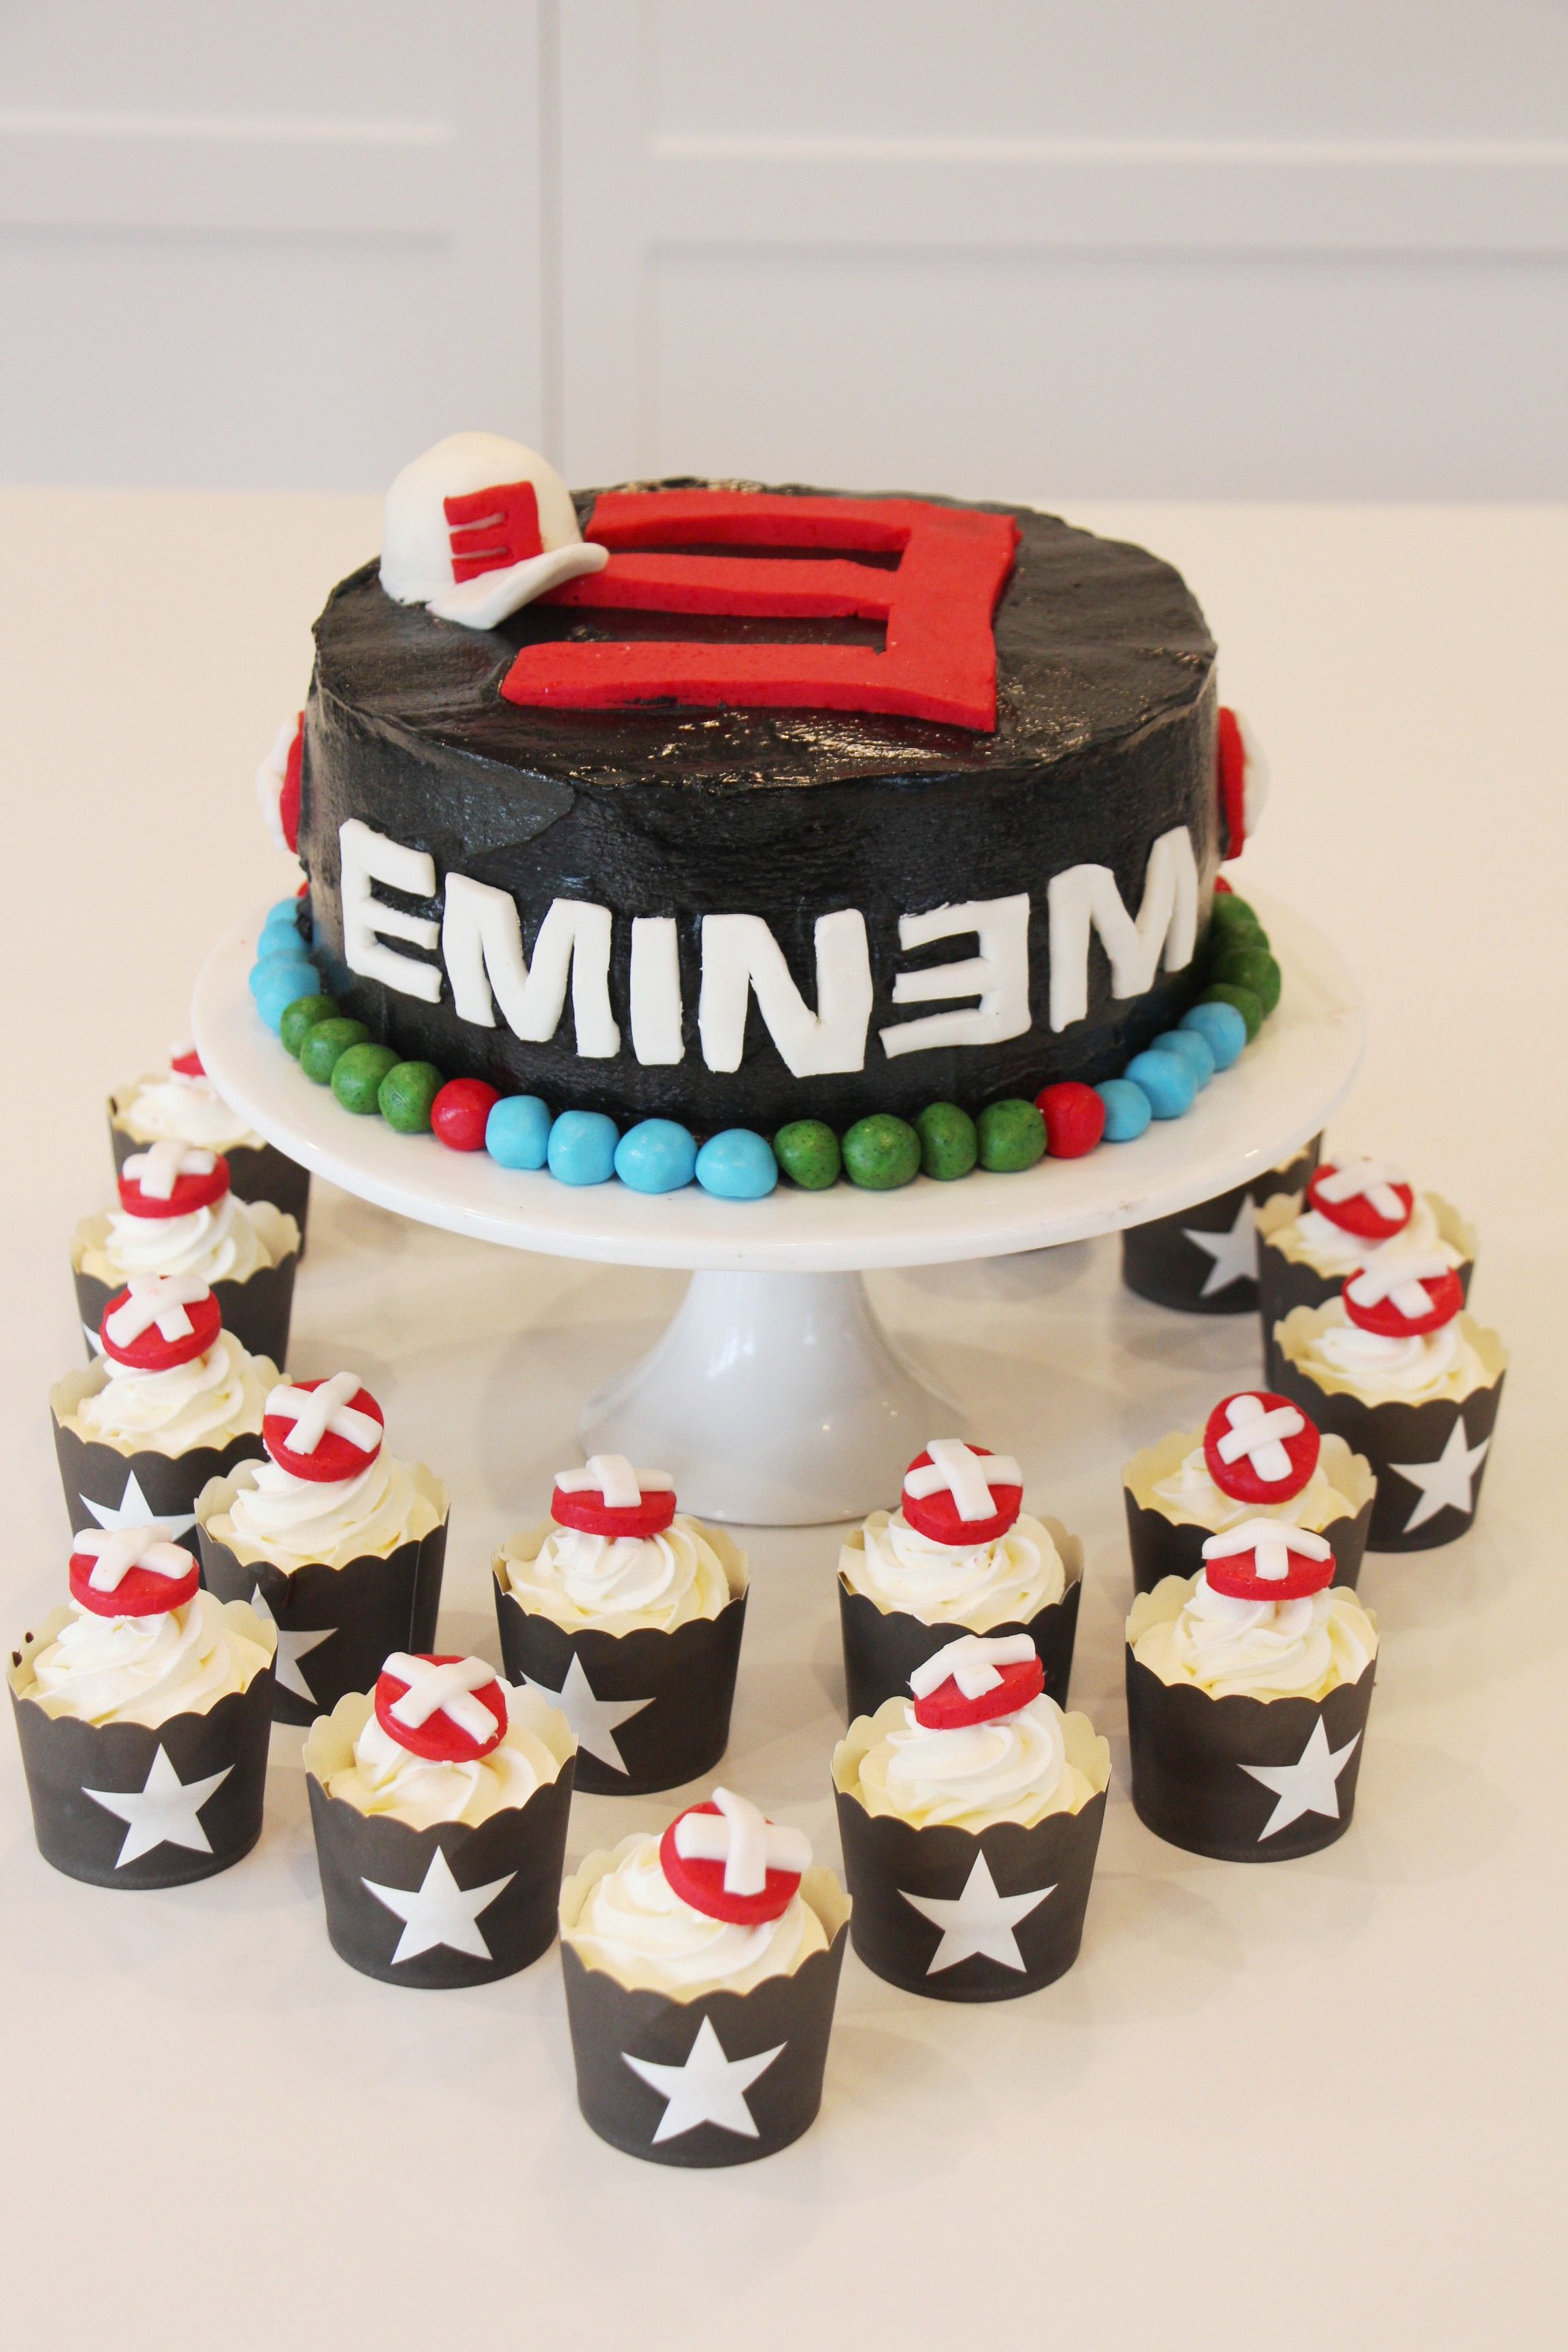 Eminem Themed Cake For A Gangsters And Rappers 21st Party Used The